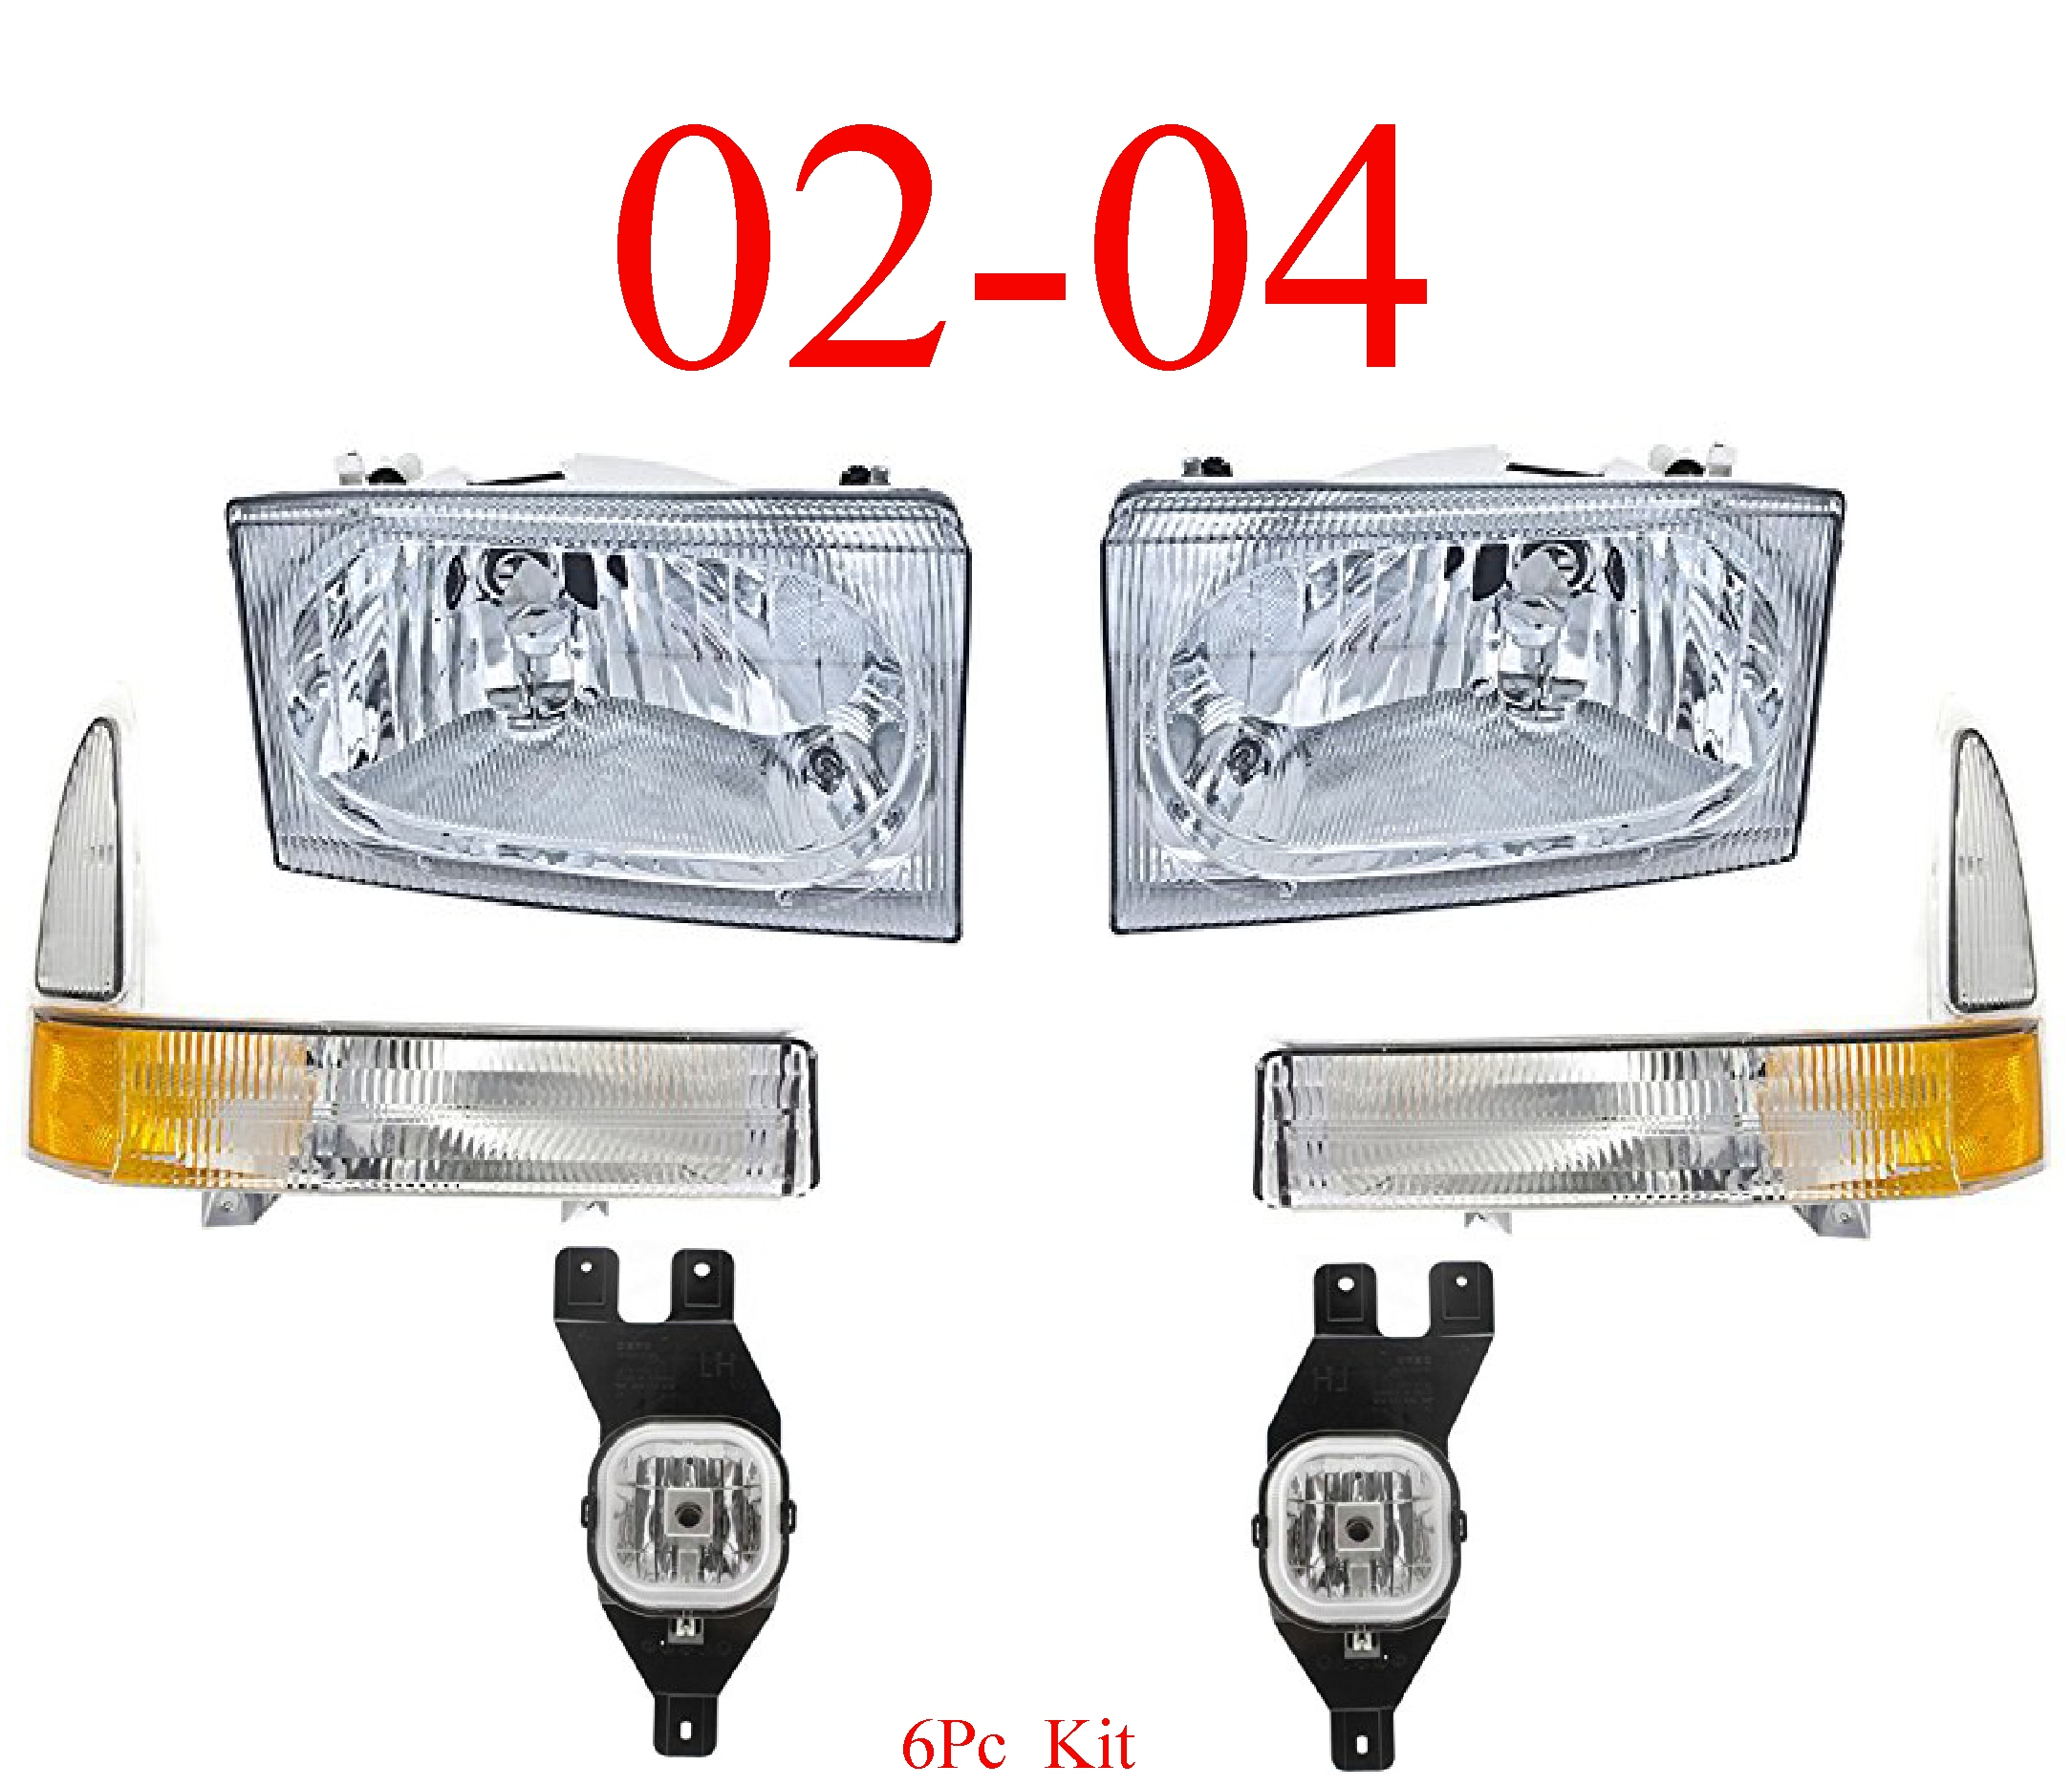 02-04 Ford Super Duty 6Pc Head, Park & Fog Light Kit